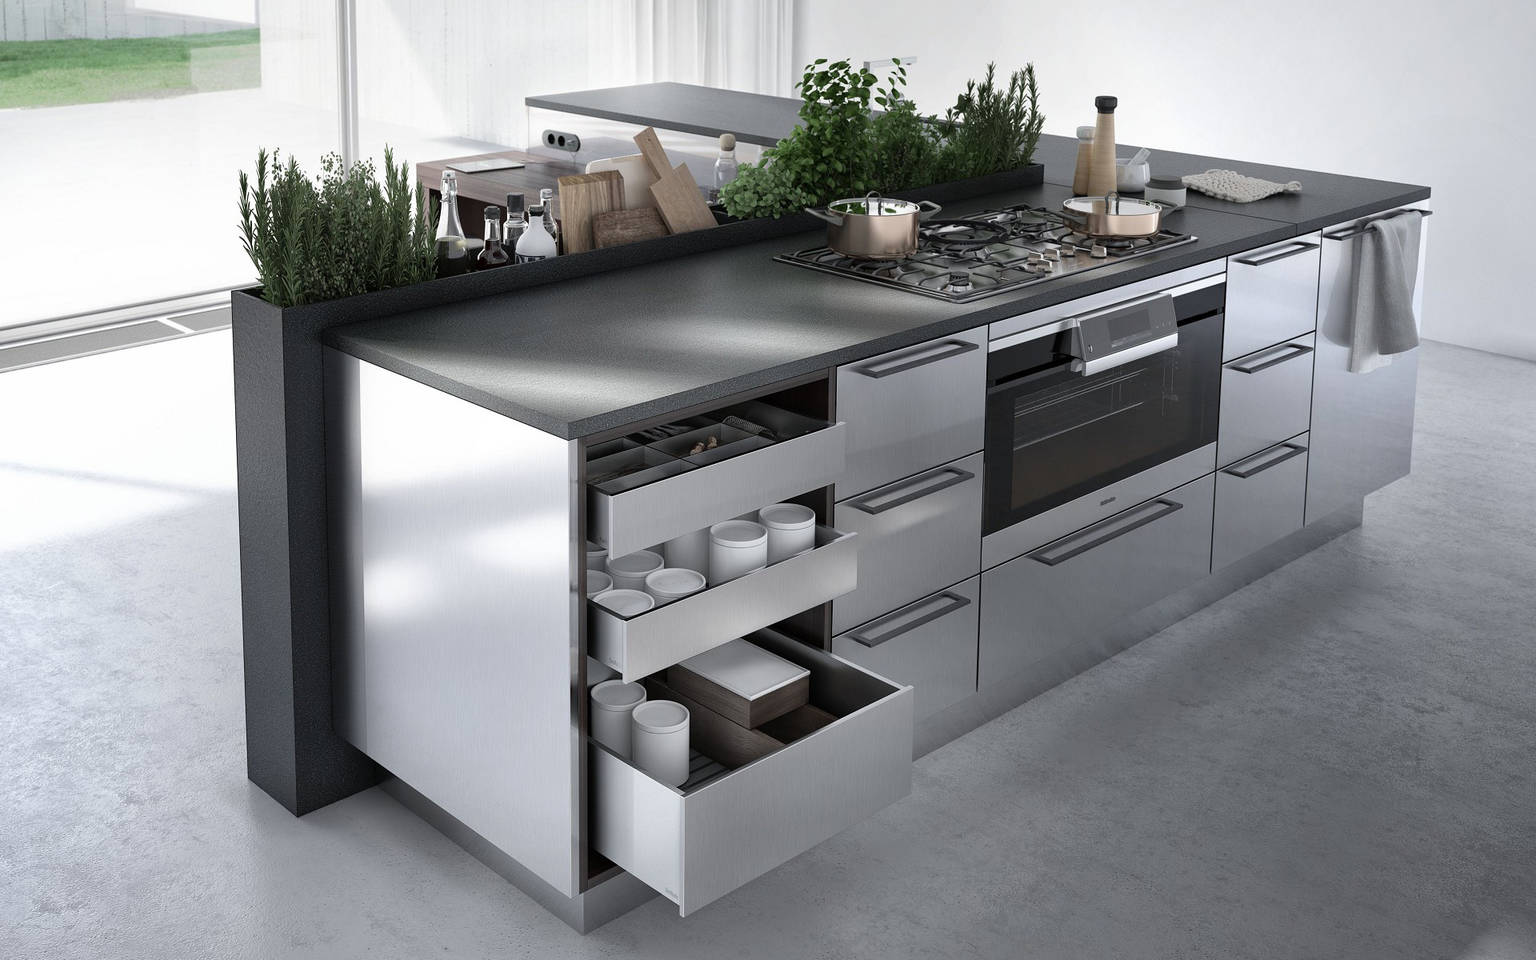 SieMatic Urban SE kitchen island in L shape with open drawers, herb garden and breakfast bar